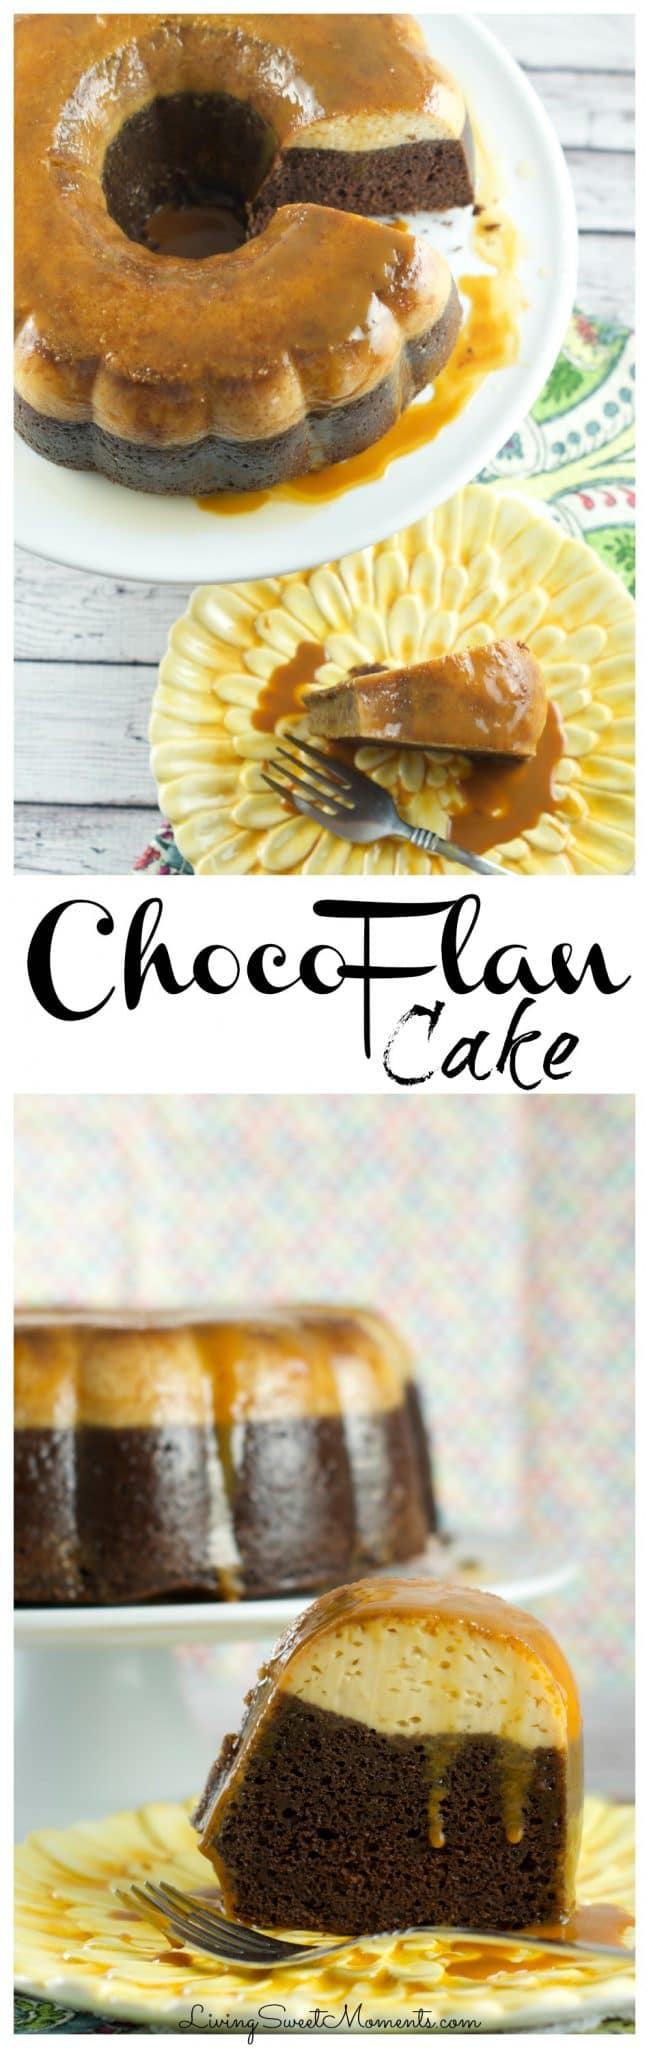 Chocoflan Cake Recipe - this easy latin cake is moist and delicious. A combination of flan and chocolate cake with a drizzle of caramel sauce. Perfect dessert